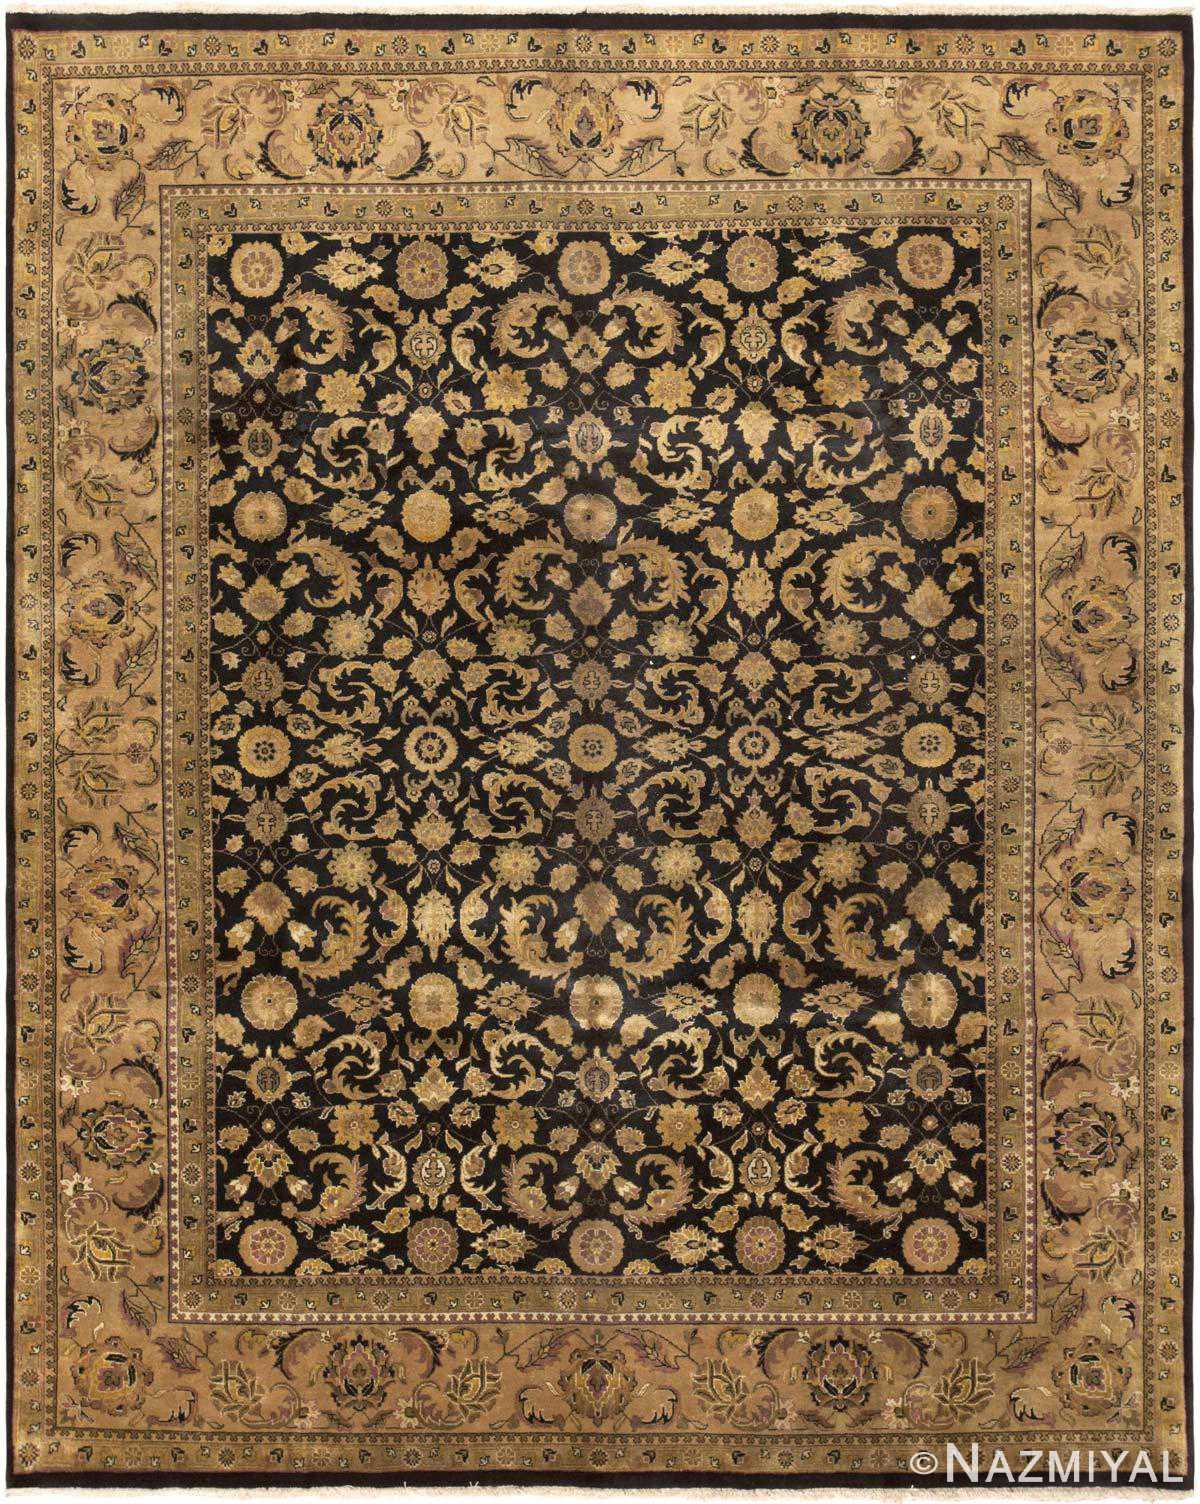 Tabriz rug modern indian carpet 43669 by nazmiyal for Home inspired by india rug